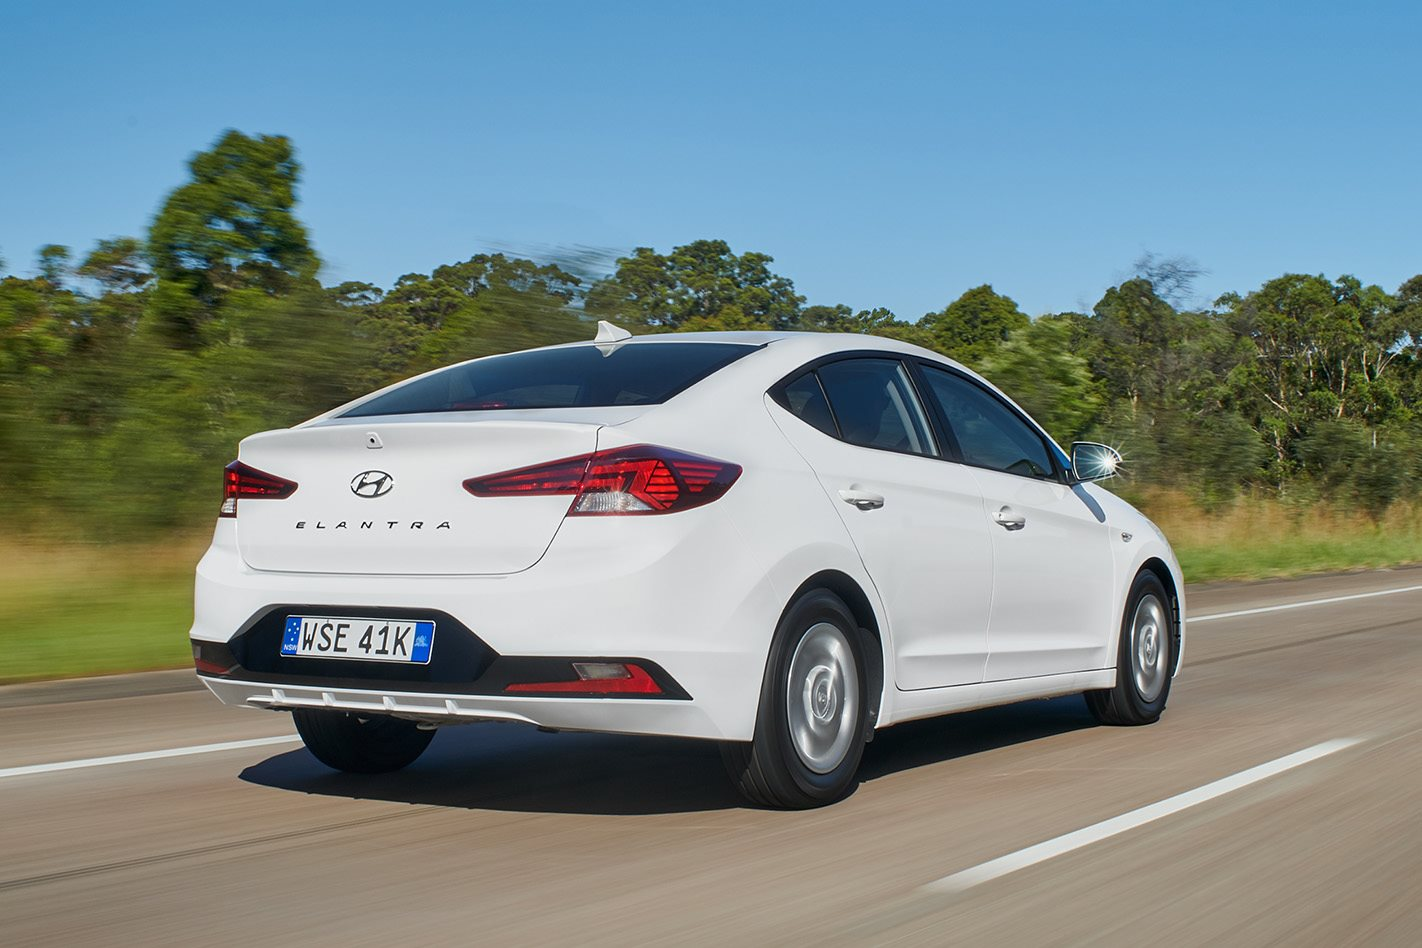 2019 Hyundai Elantra Go automatic quick review